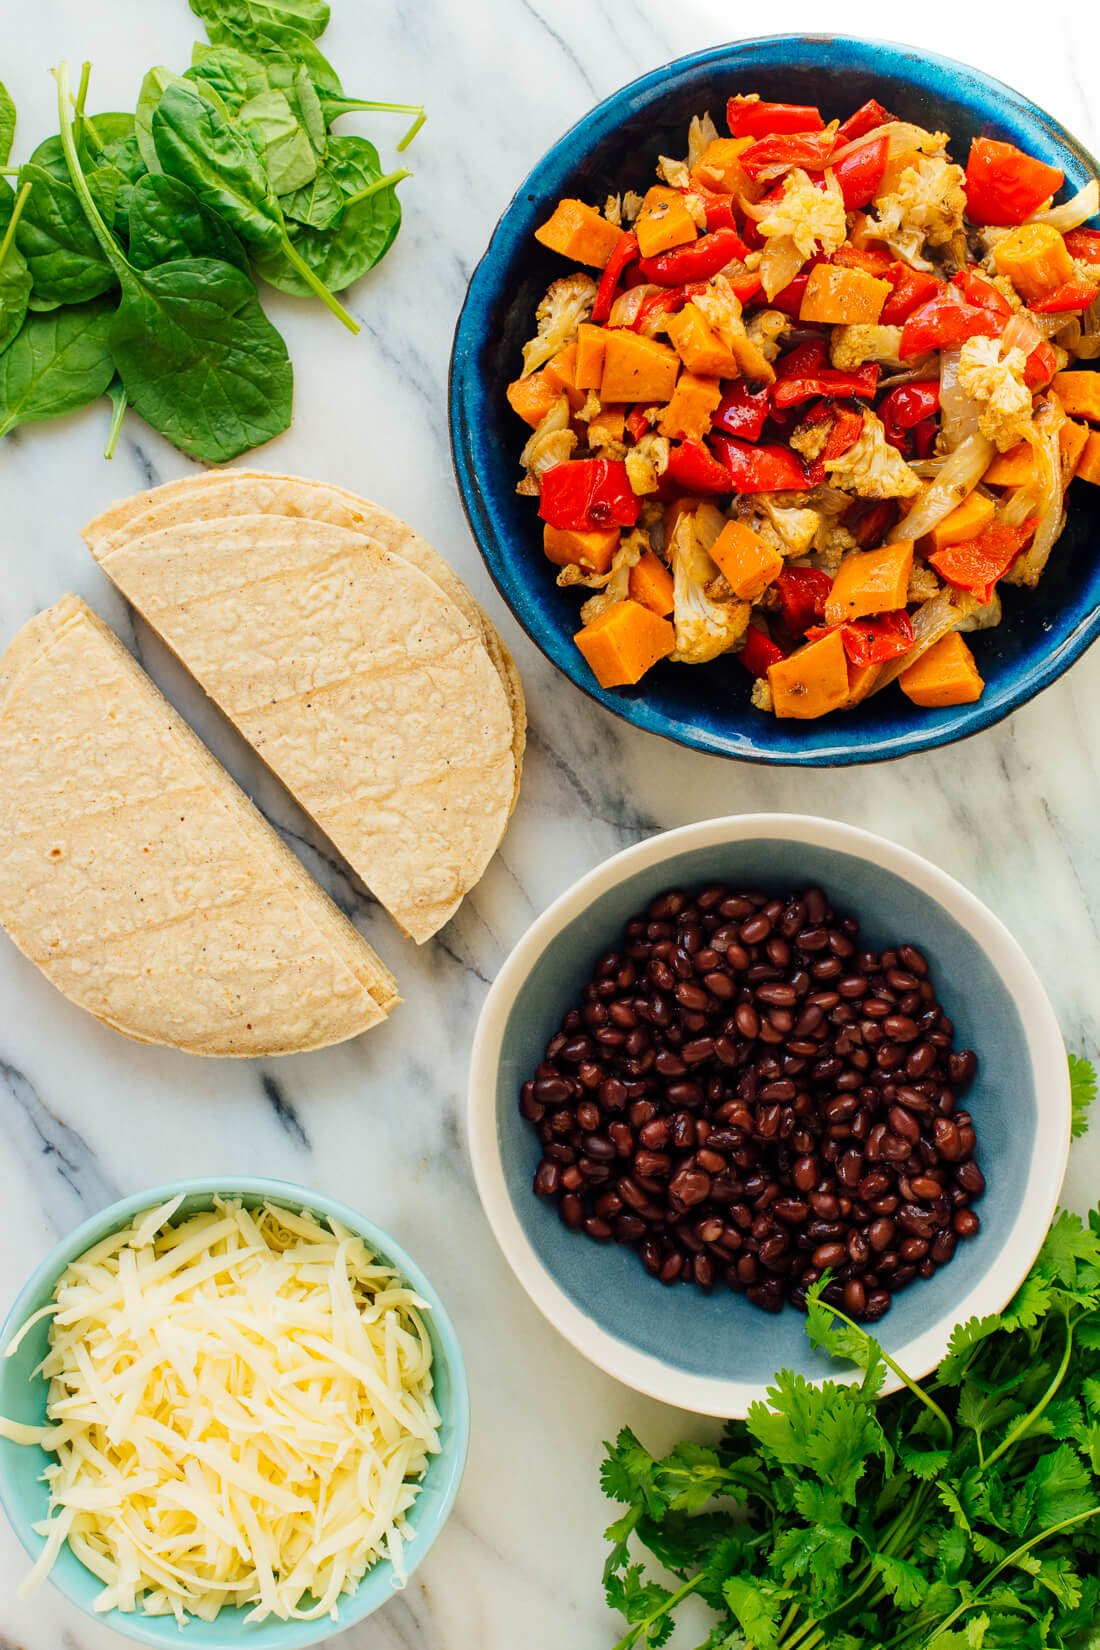 roasted vegetables and black beans